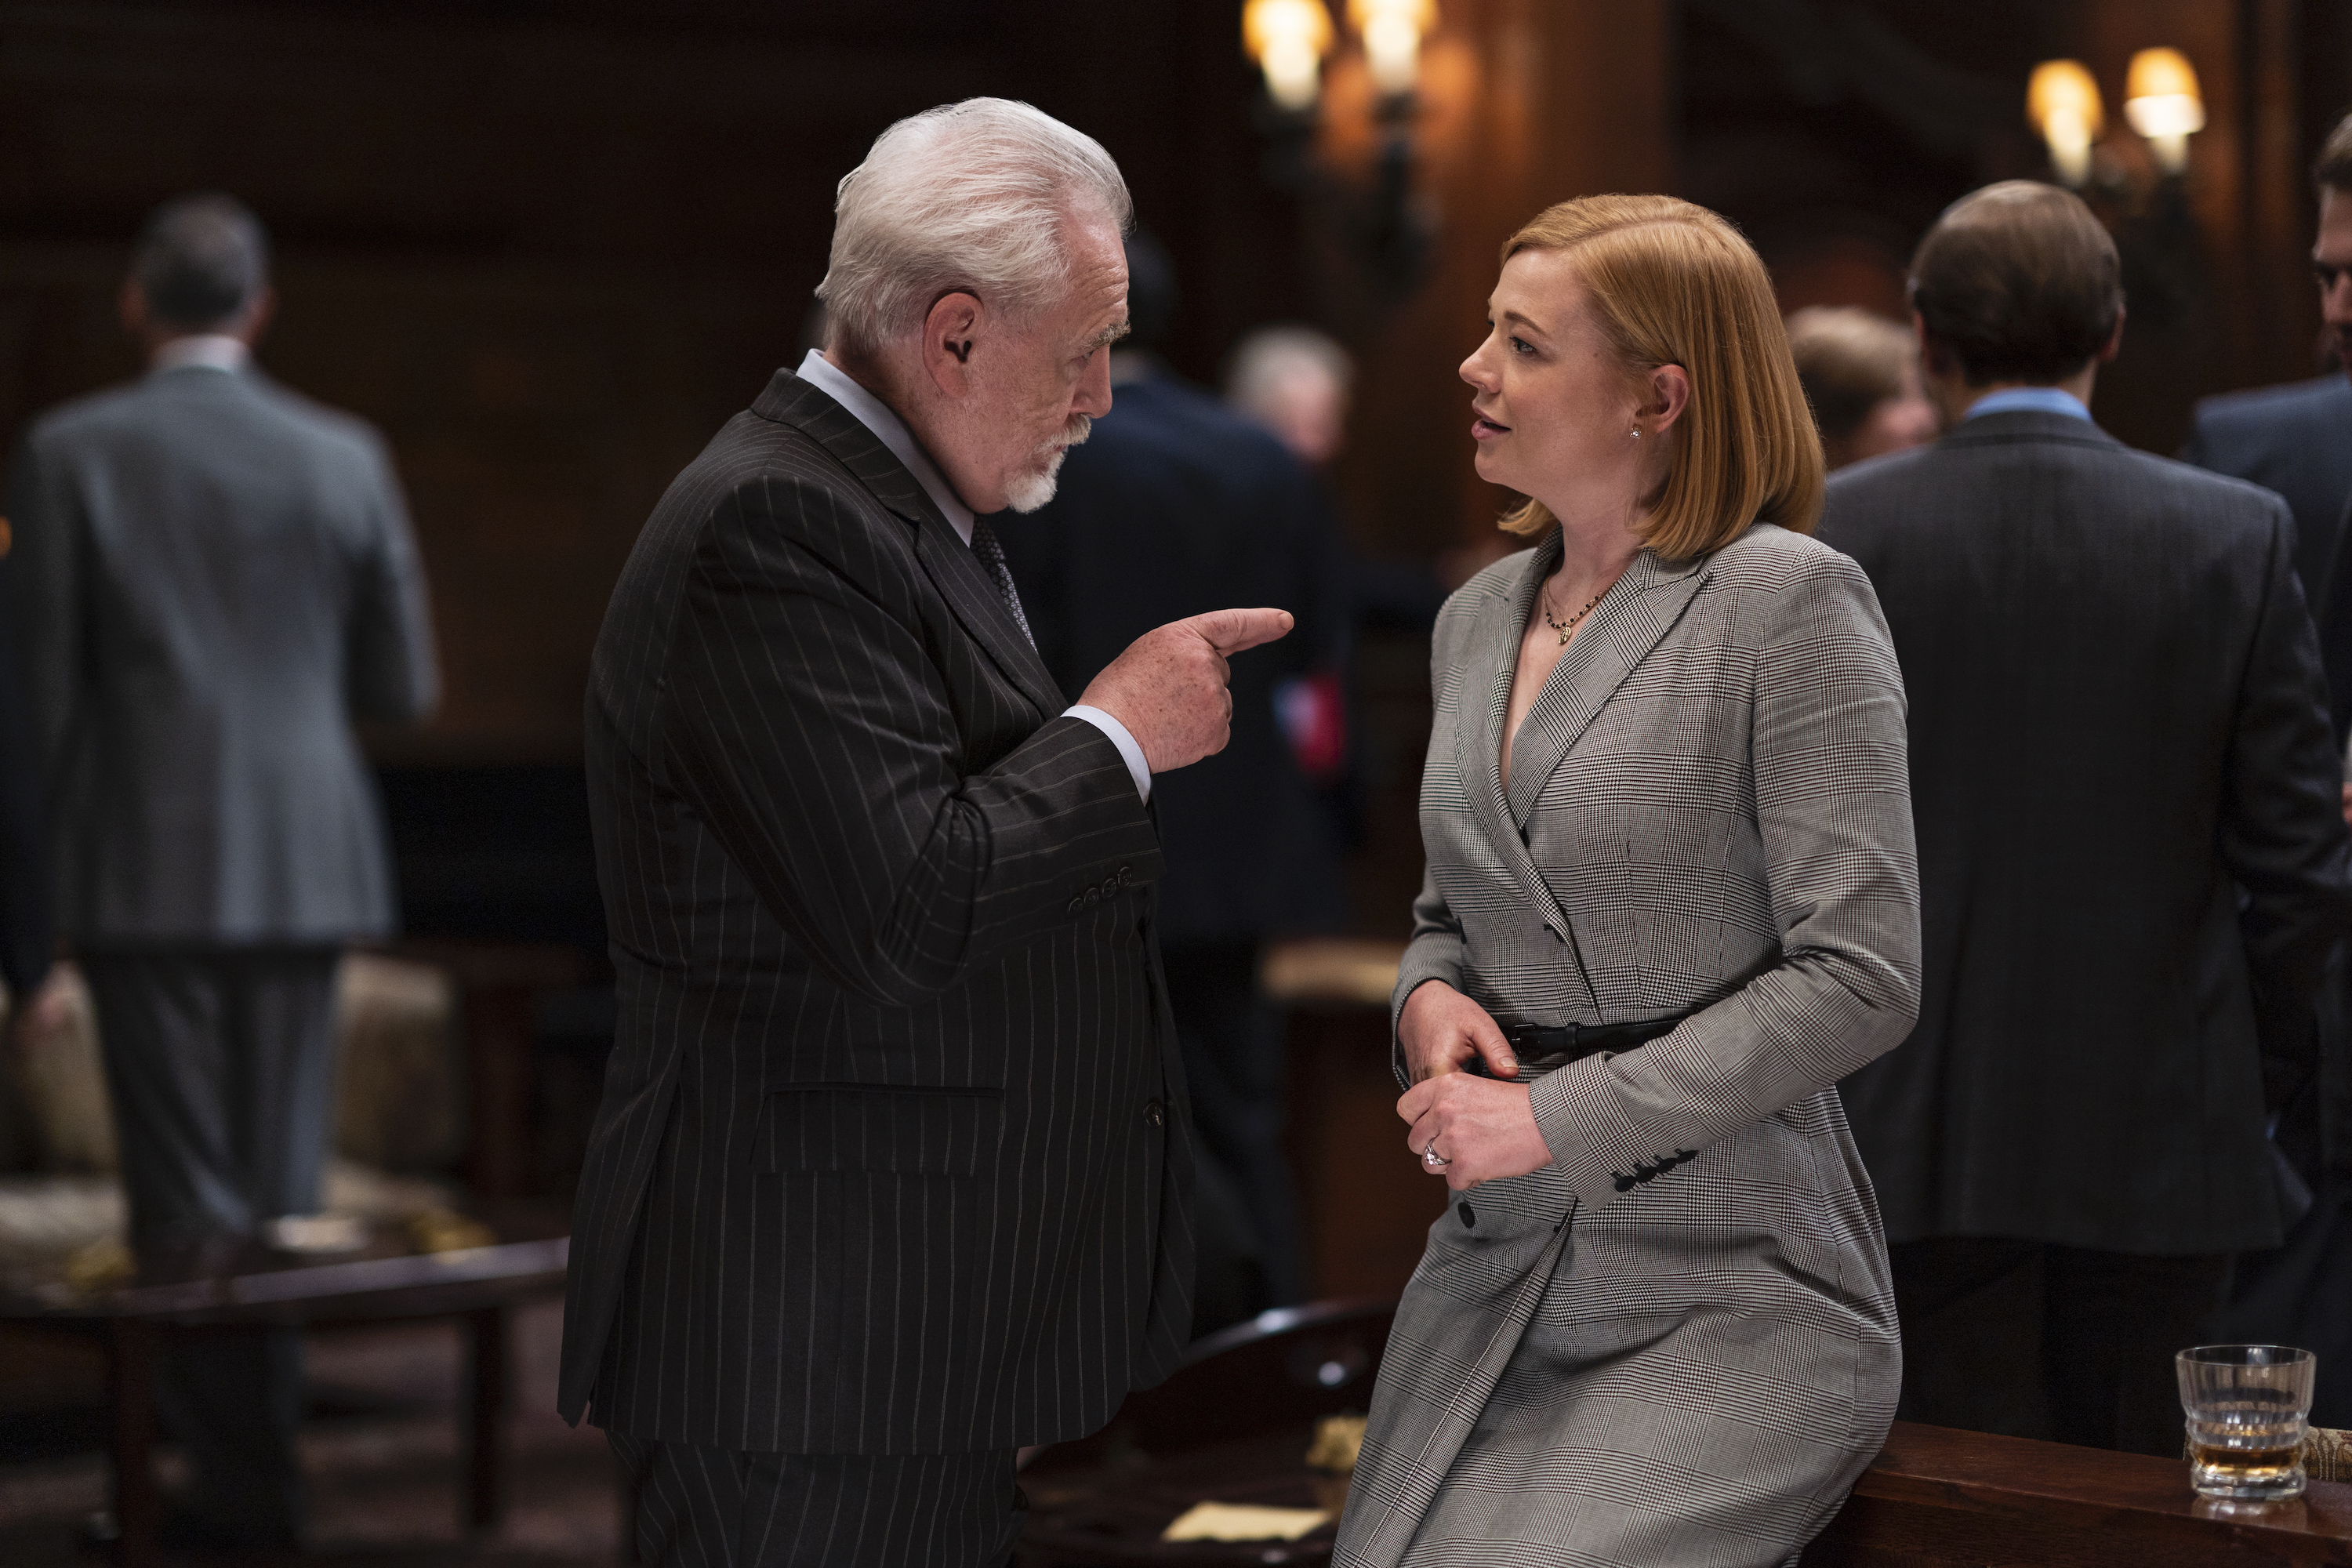 Succession penultimate season 2 episode is more optimistic than the show's ever been